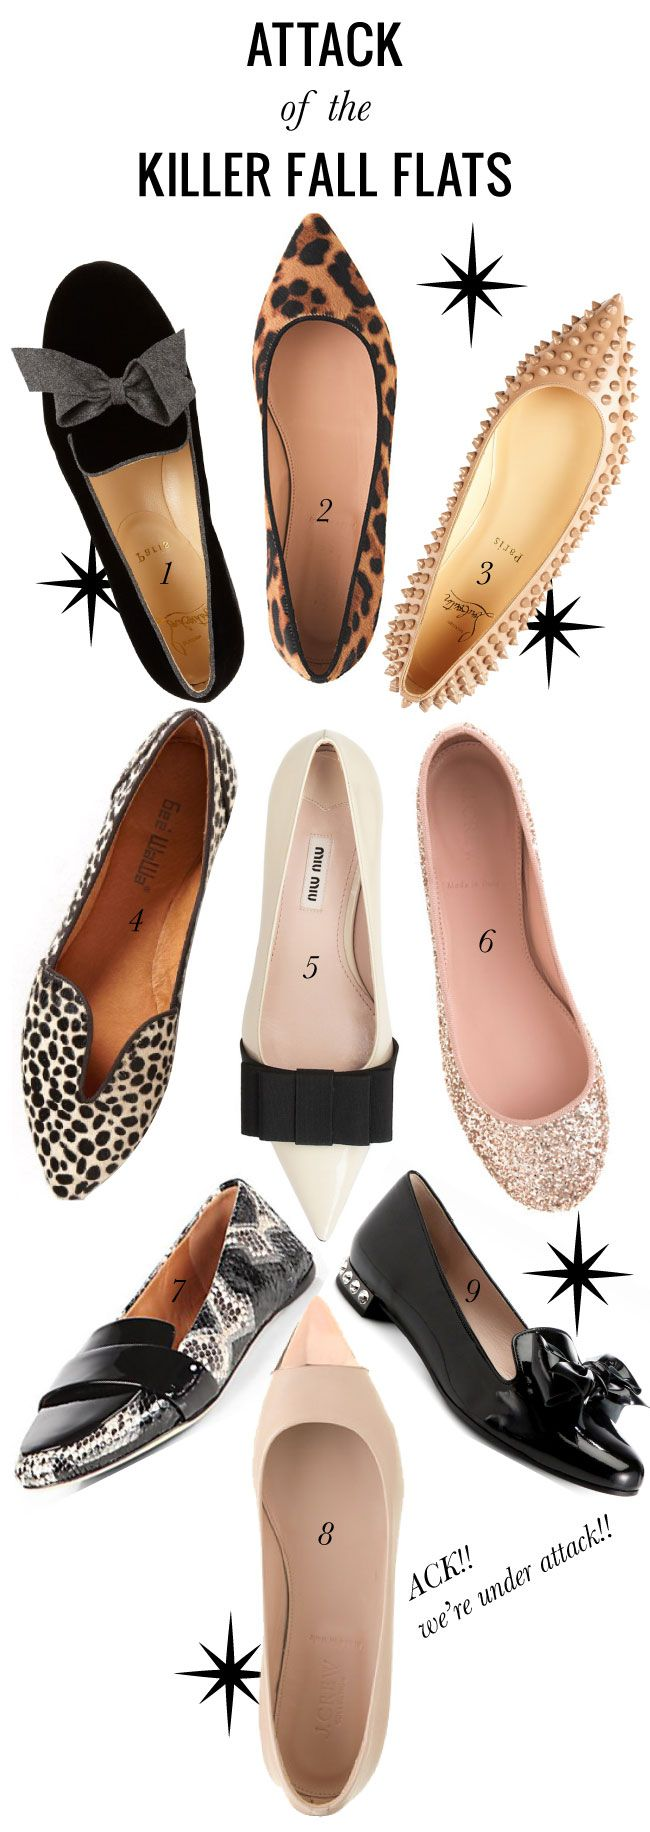 KILLER fall flats // Mrs Lilien - I need to check these out. I seldom wear flats, but I also have a hard time finding cute ones.